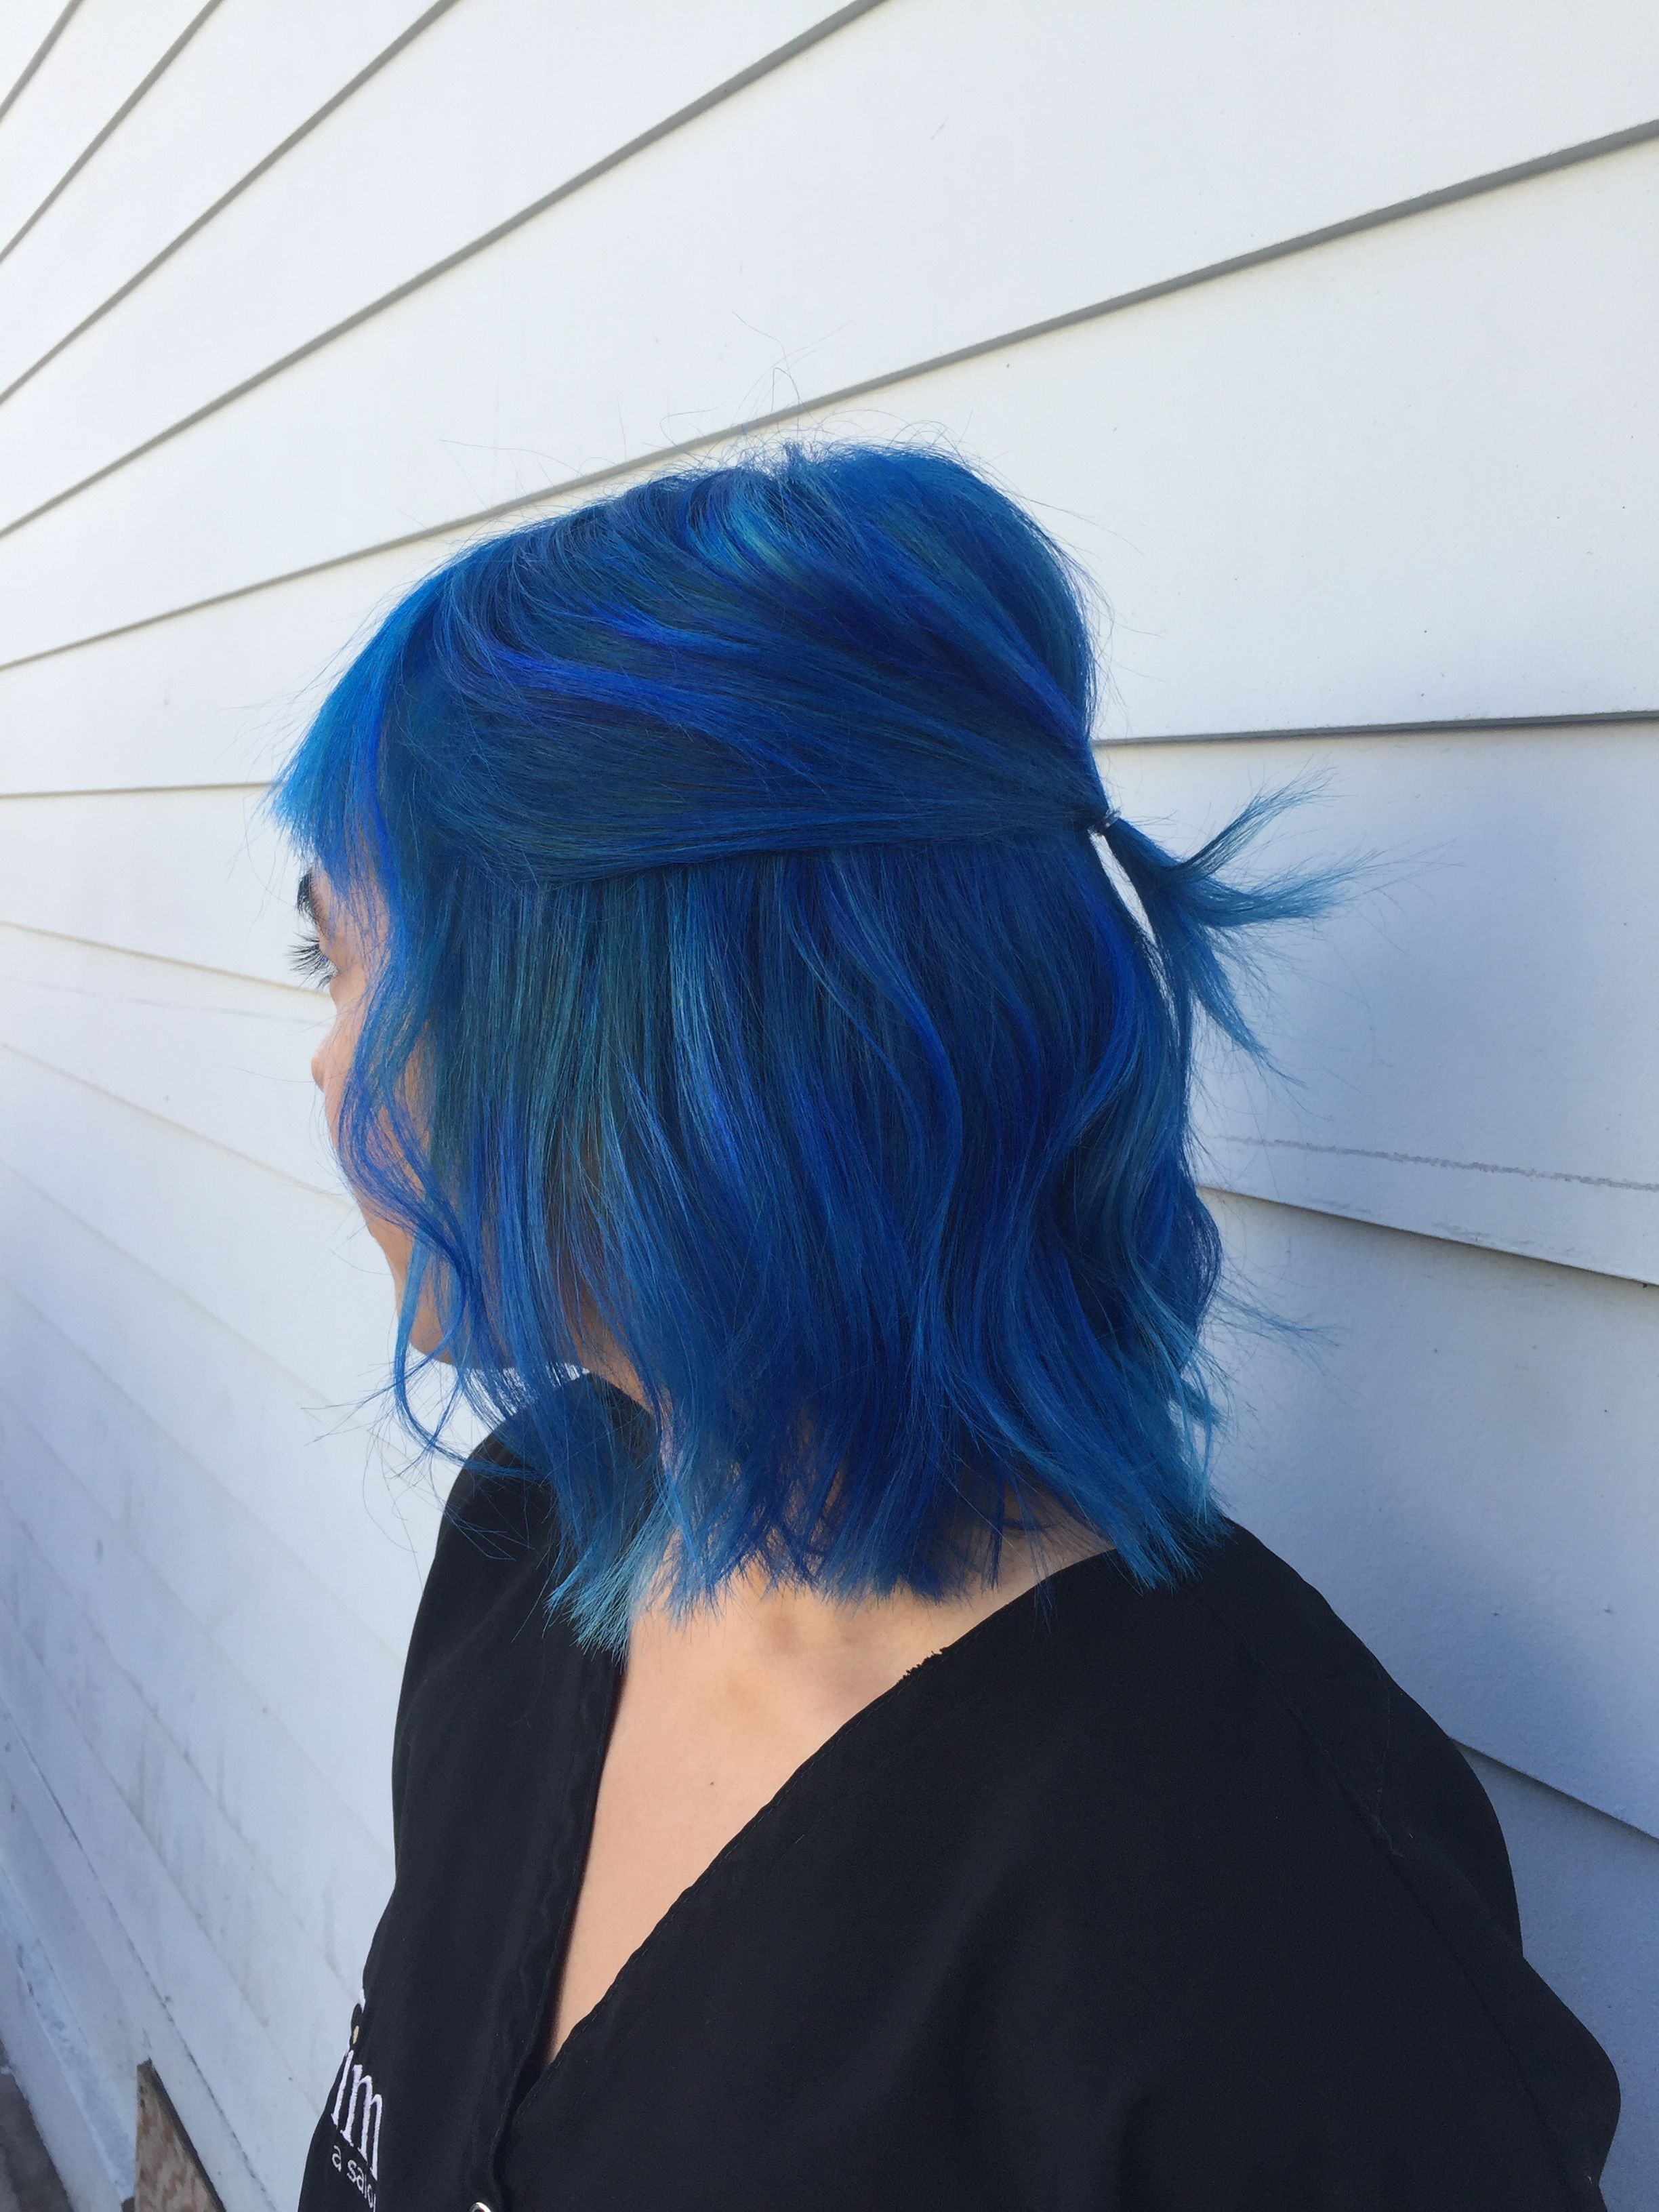 Pin by cakedupkaitlin on style hairball pinterest hair